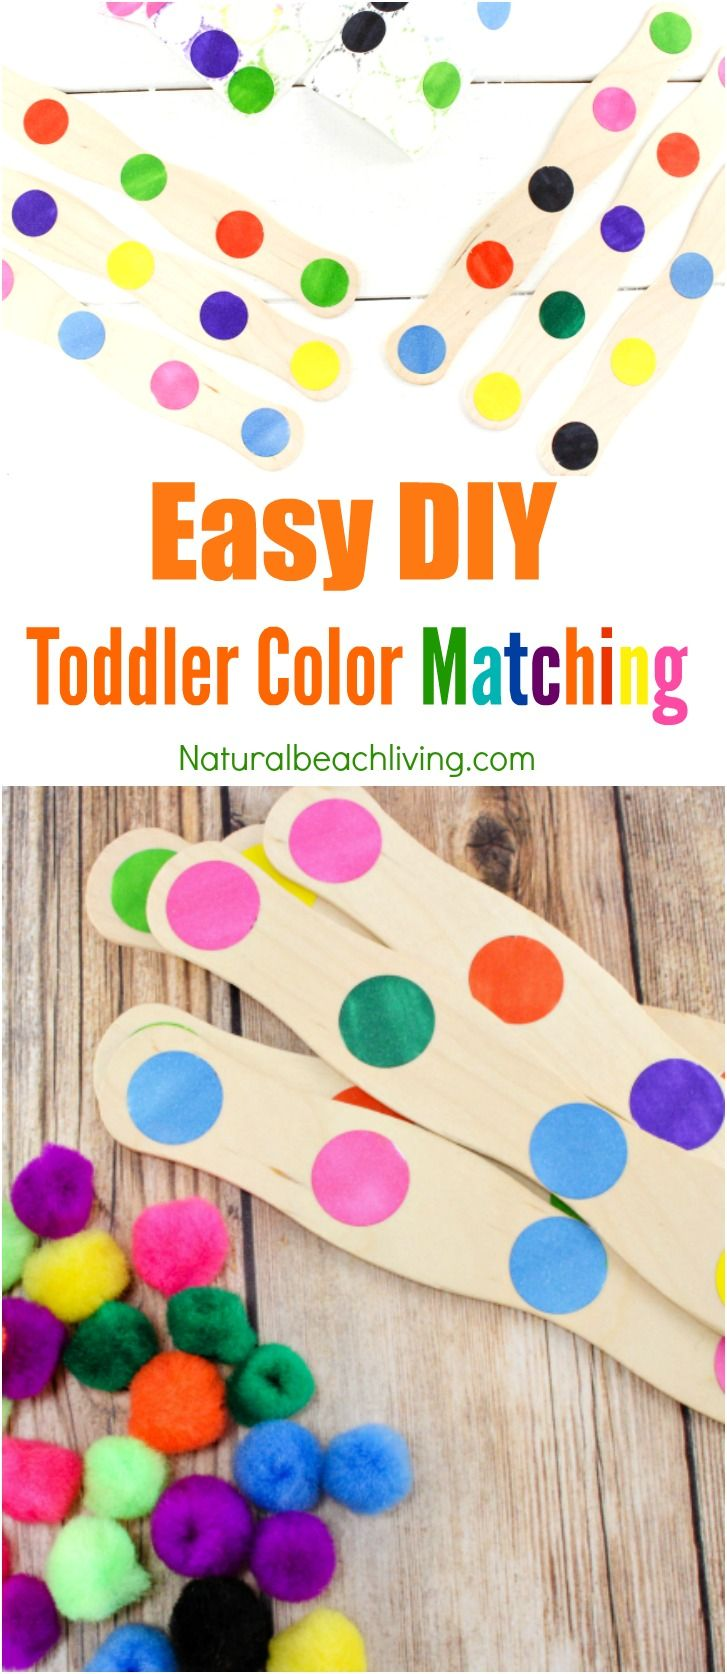 Printable color matching games for preschoolers - Easy Diy Color Activity For Preschool And Toddler Age Children Toddler Color Activities Fine